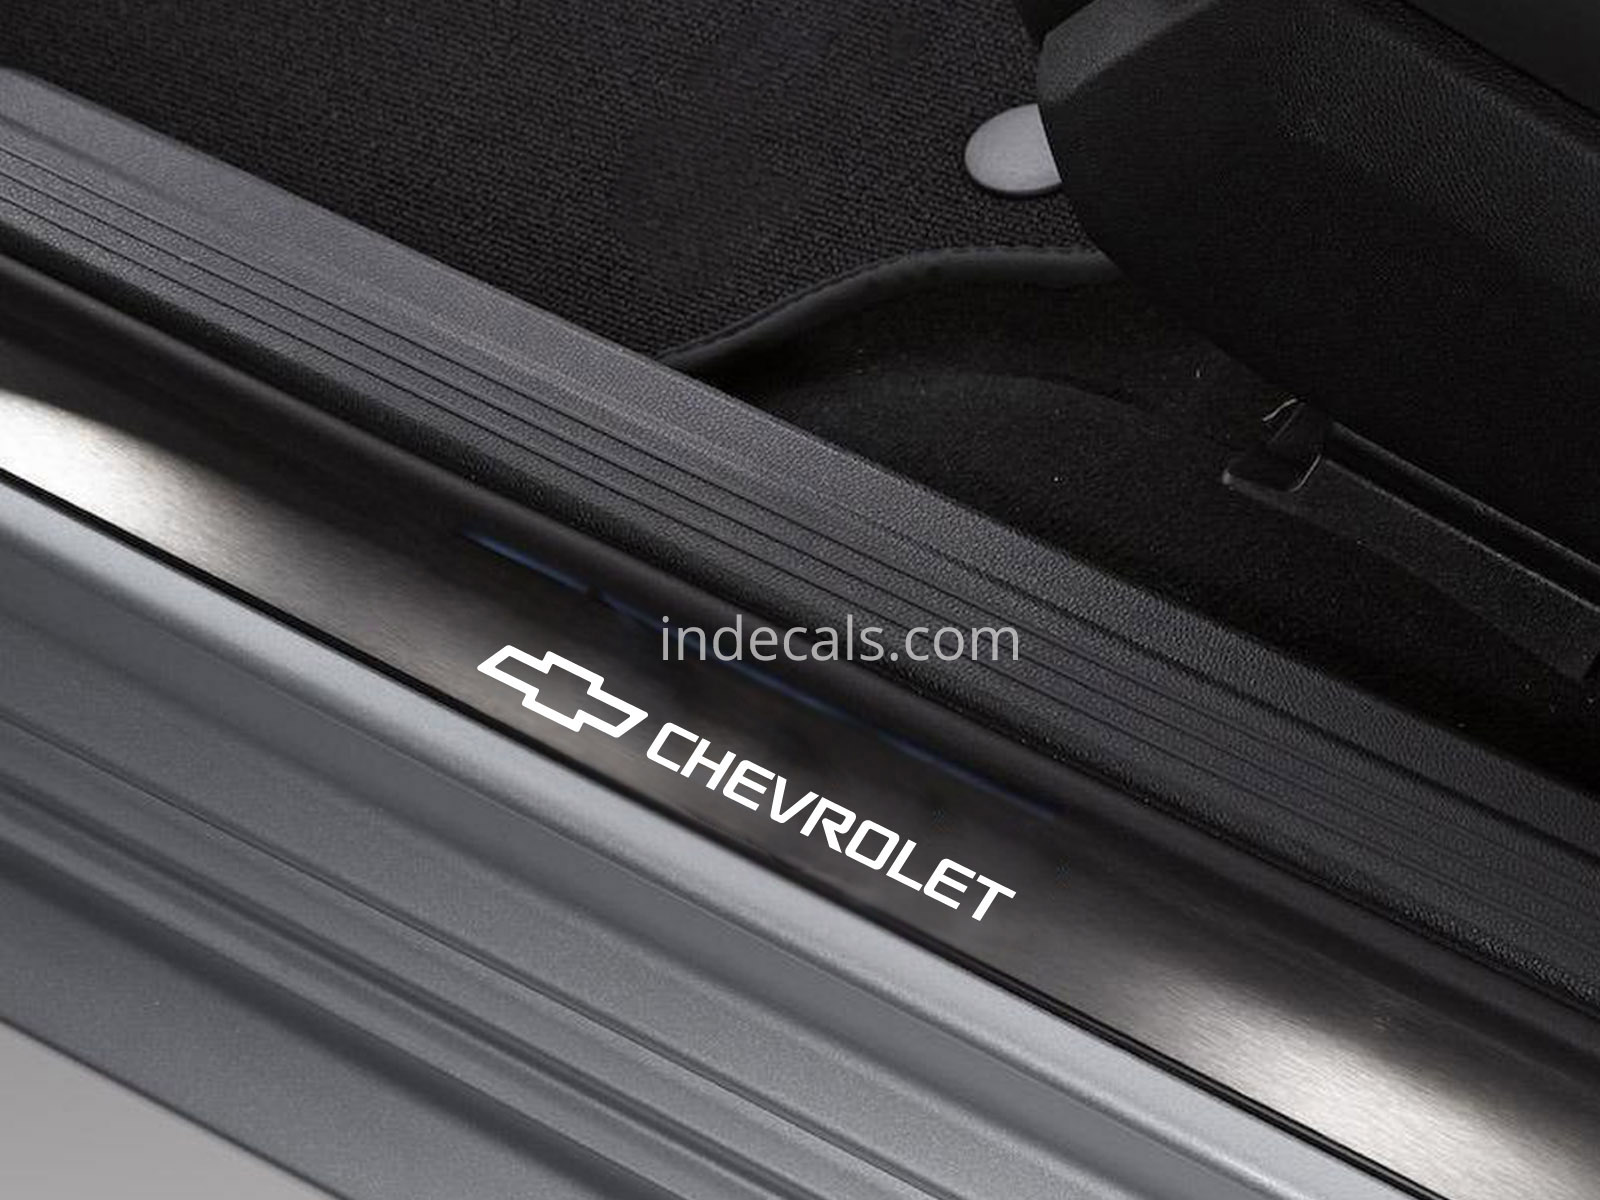 6 x Chevrolet Stickers for Door Sills - White